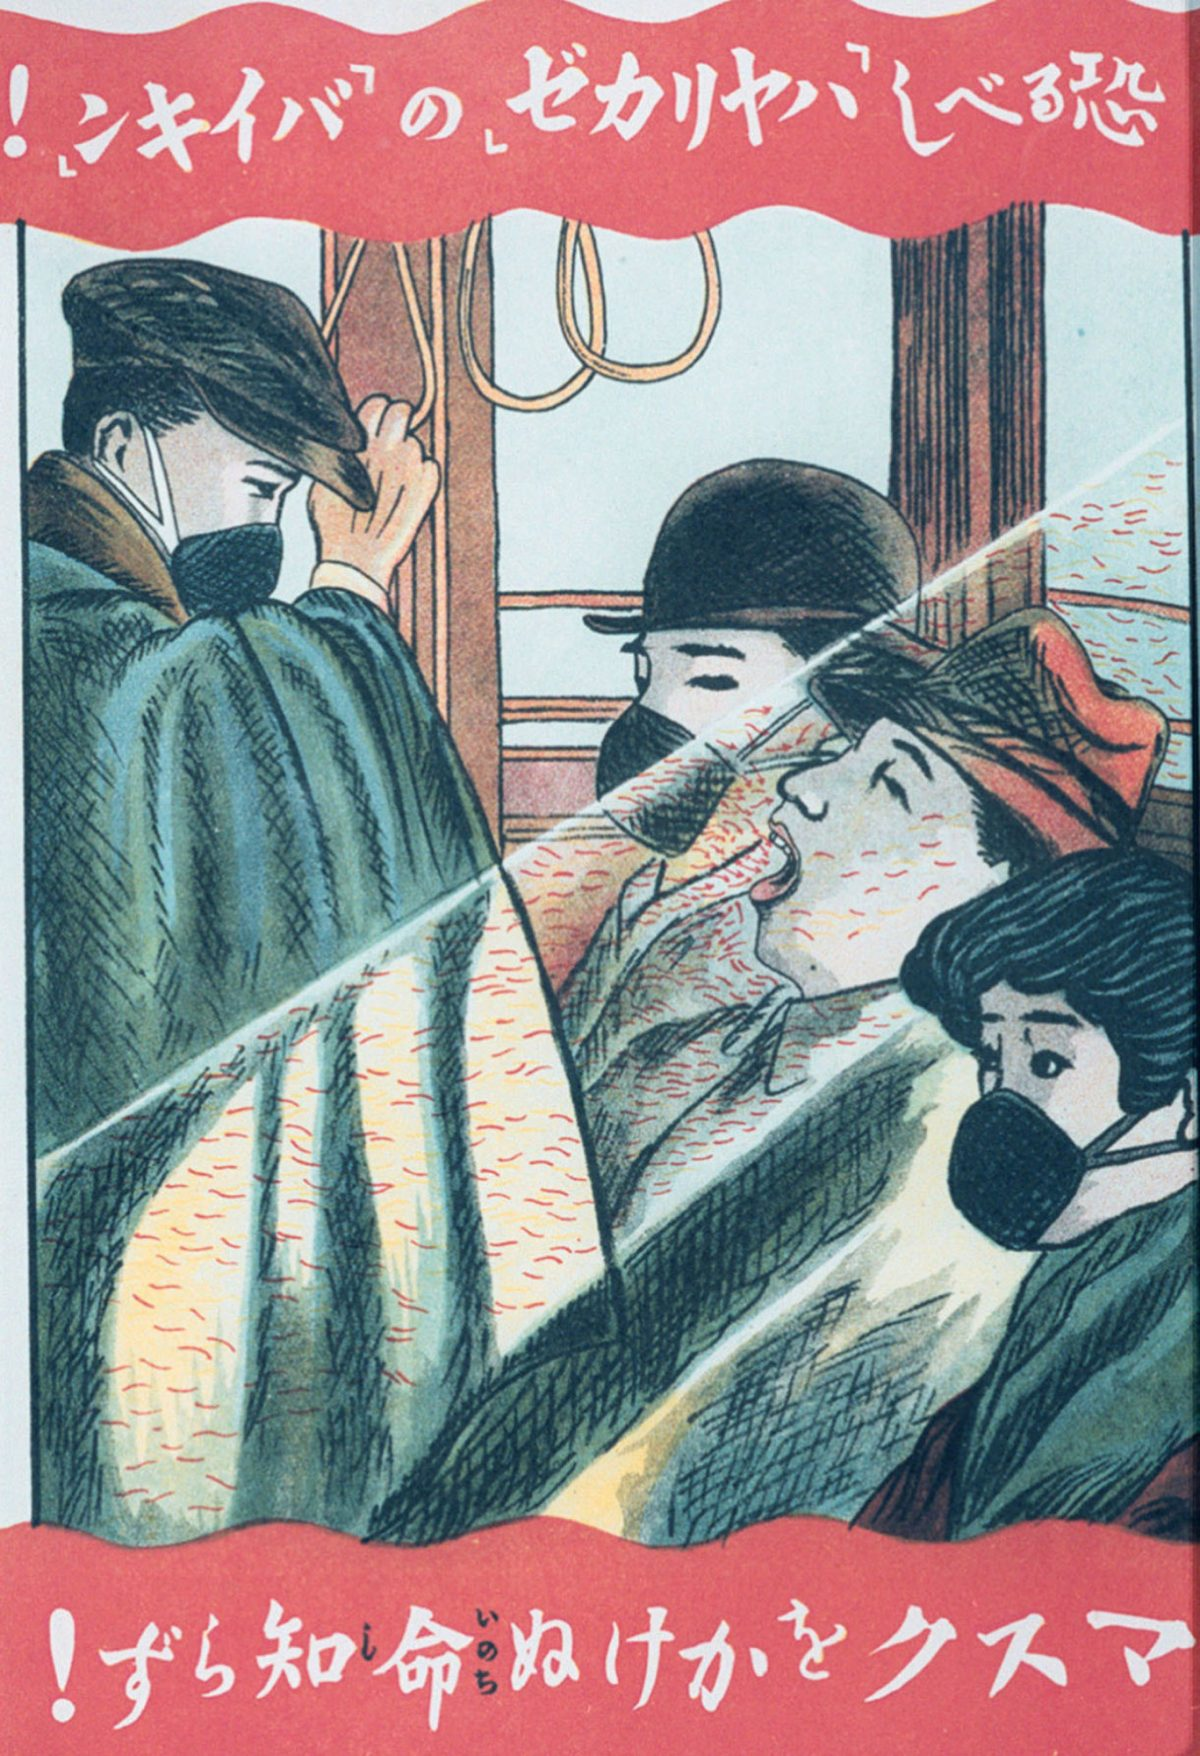 "In 1918, Japan's Central Sanitary Bureau (JCSB) published a manual which introduced the people in ways to recognise and prevent Spanish Flu (Supein kaze), the disease that had ravaged humanity claiming as many as 50 million lives. ""There is hardly a school in Tokyo but from which dozens or scores of students and teachers are absent, and it is spreading to offices and factories. The disease has become known as the 'Spanish influenza,'"" ran a report in The Japan Advertiser (October 27, 1918). Each month during the epidemic, the JCSB  published number of deaths by prefecture. From July 2018 and September 1919, 21 million Japanese contracted the virus, from a population of 51 million. There were 257,000 deaths. 455-page manual featured charts and 4 rules to beat the bug:  ""stay away""; ""cover your mouth and nose""; ""get vaccinated"" ; and ""gargle"". It was produced in association with a set of posters."